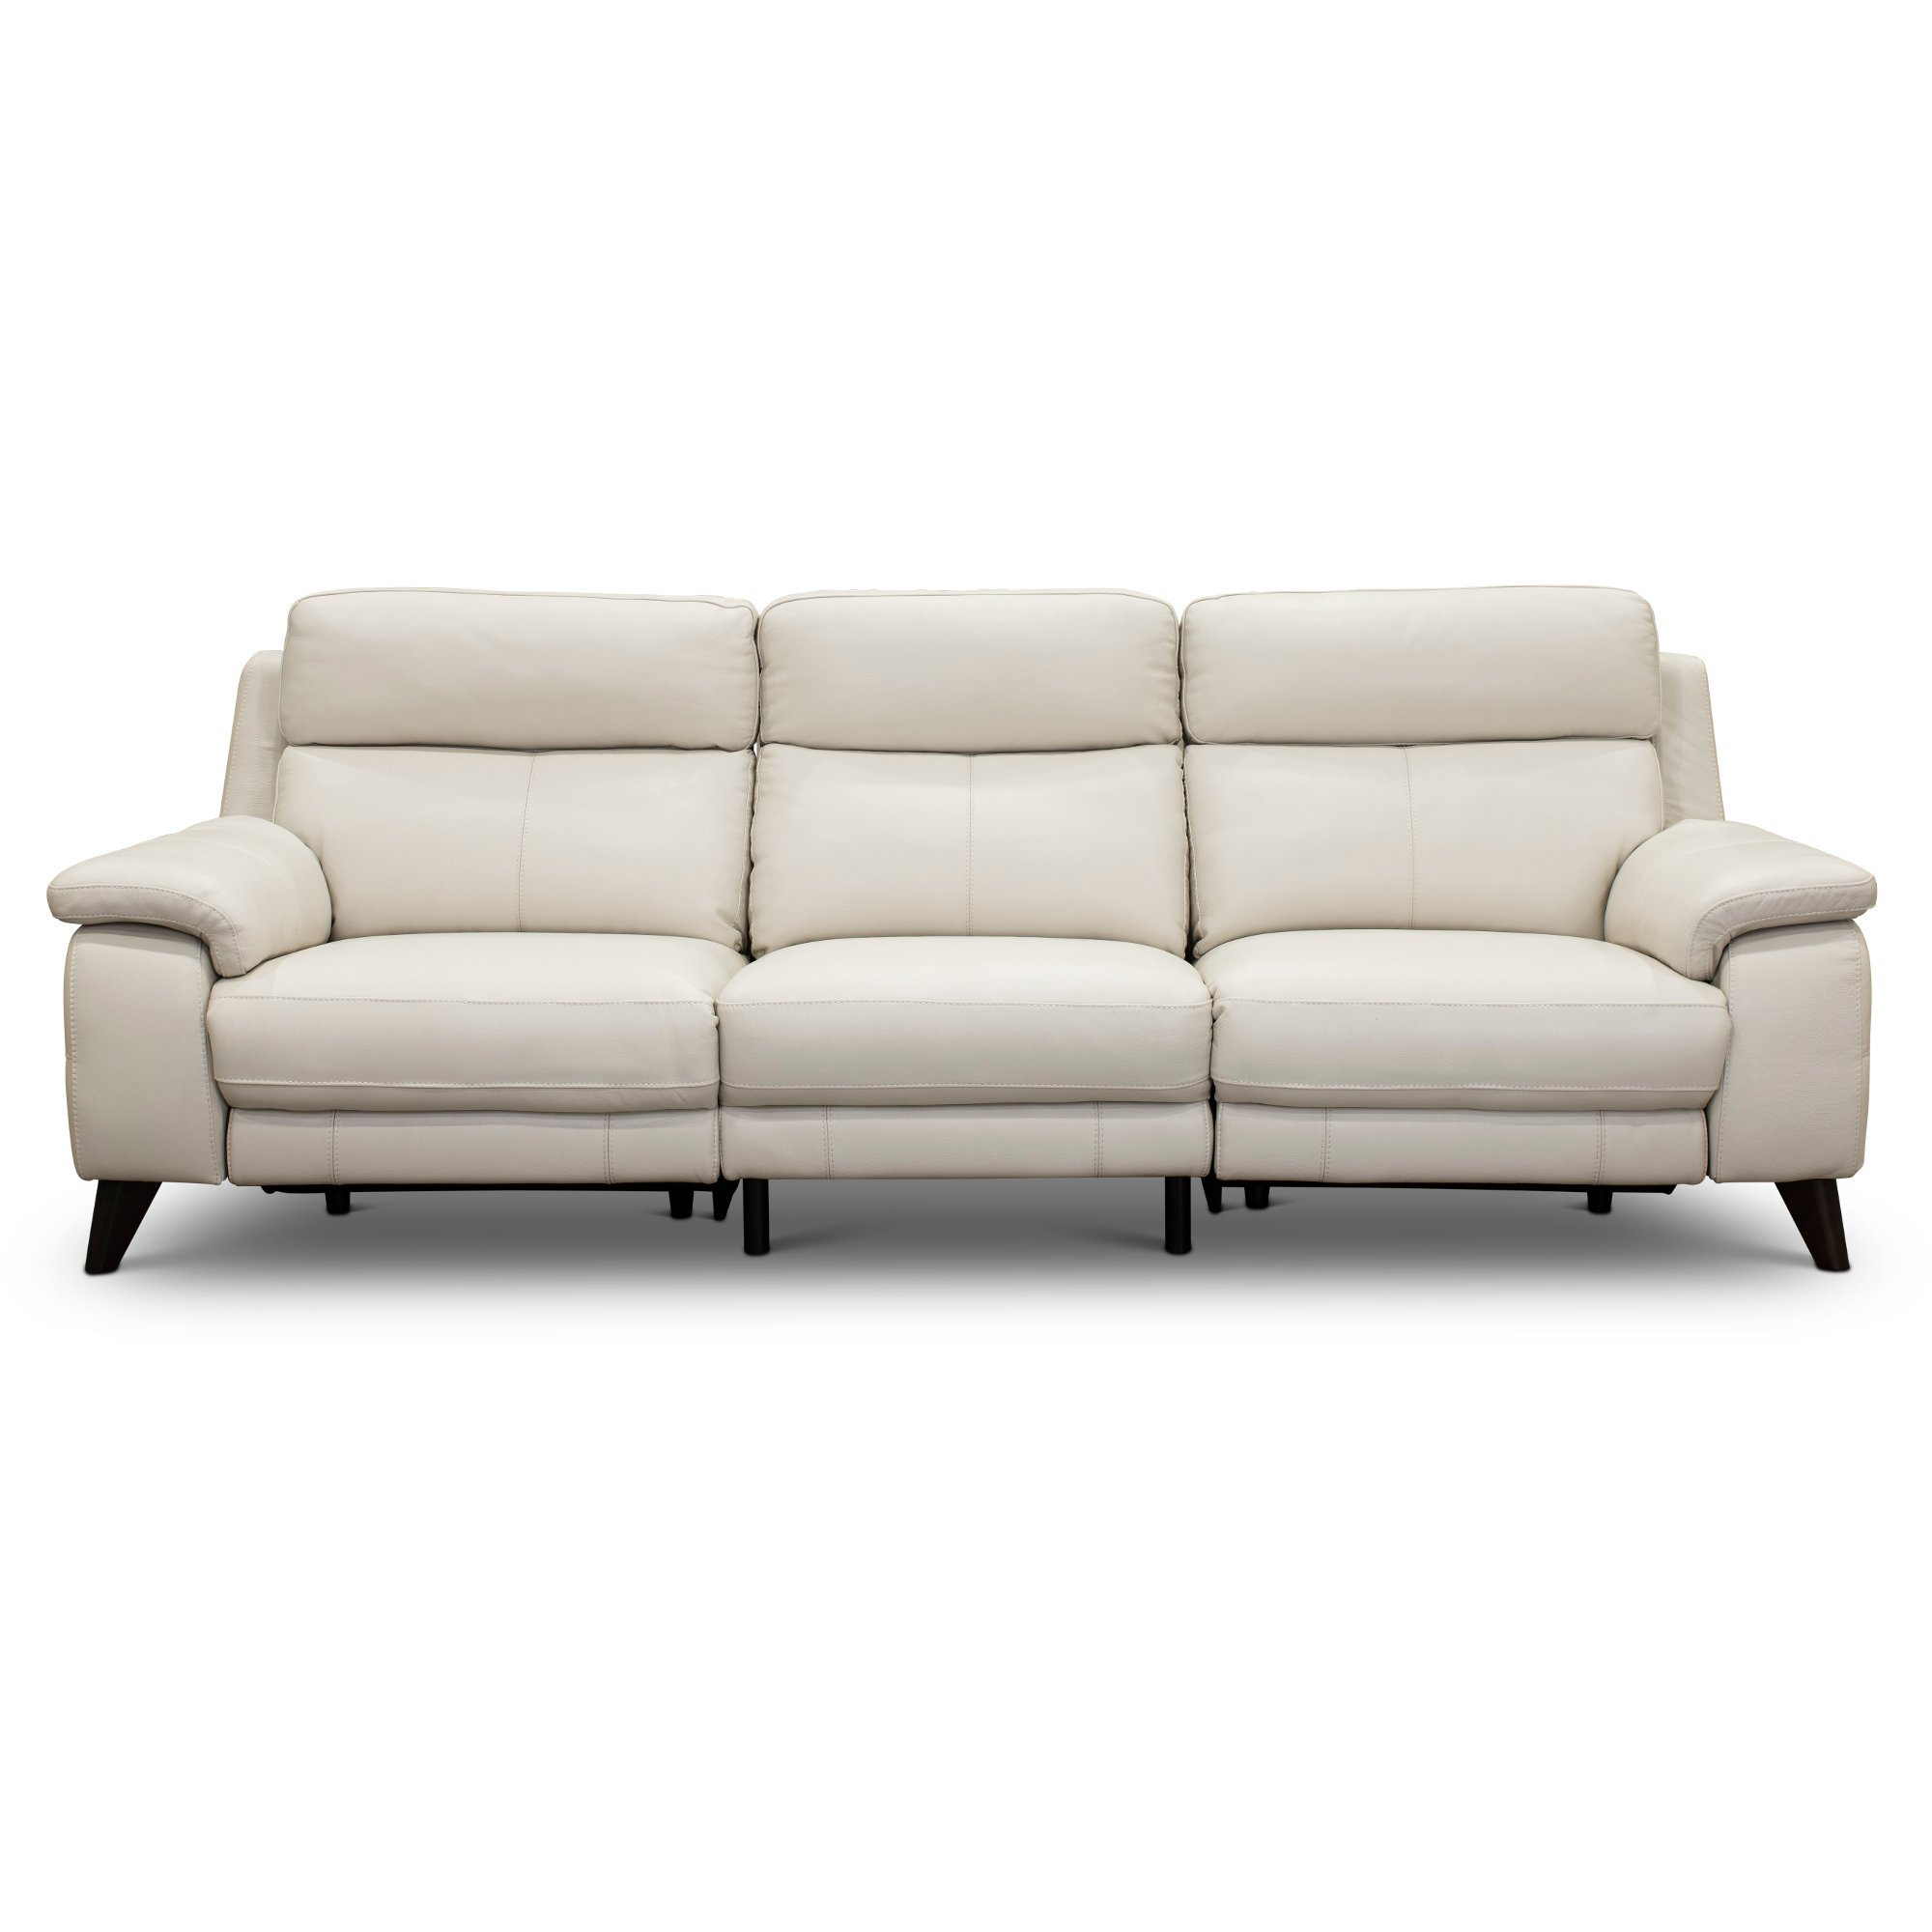 White Reclining Sofa Pin By Sofascouch On Microfiber Sofa